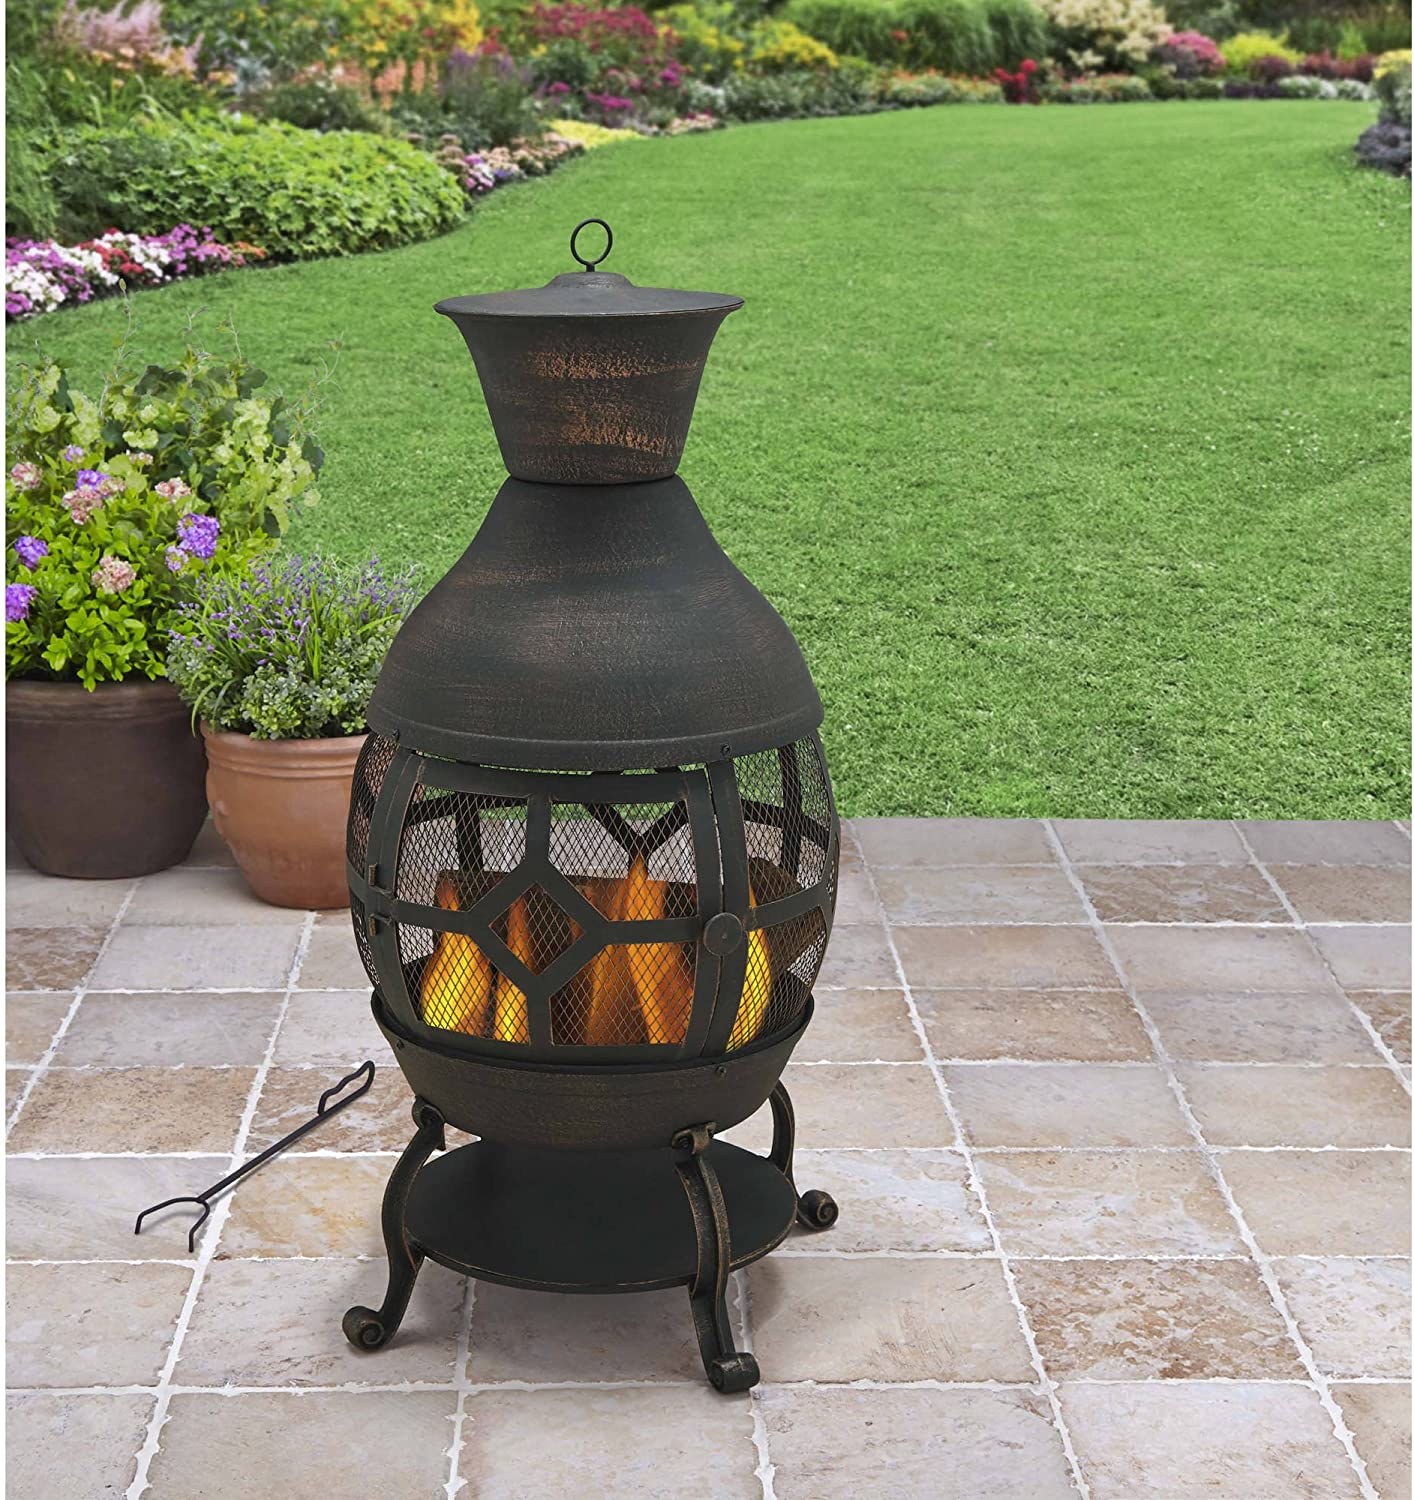 Amazon Com B H G C0 Better Homes And Gardens Antique Bronze Cast Iron Chiminea Durable Cast Iron Construction Garden Outdoor